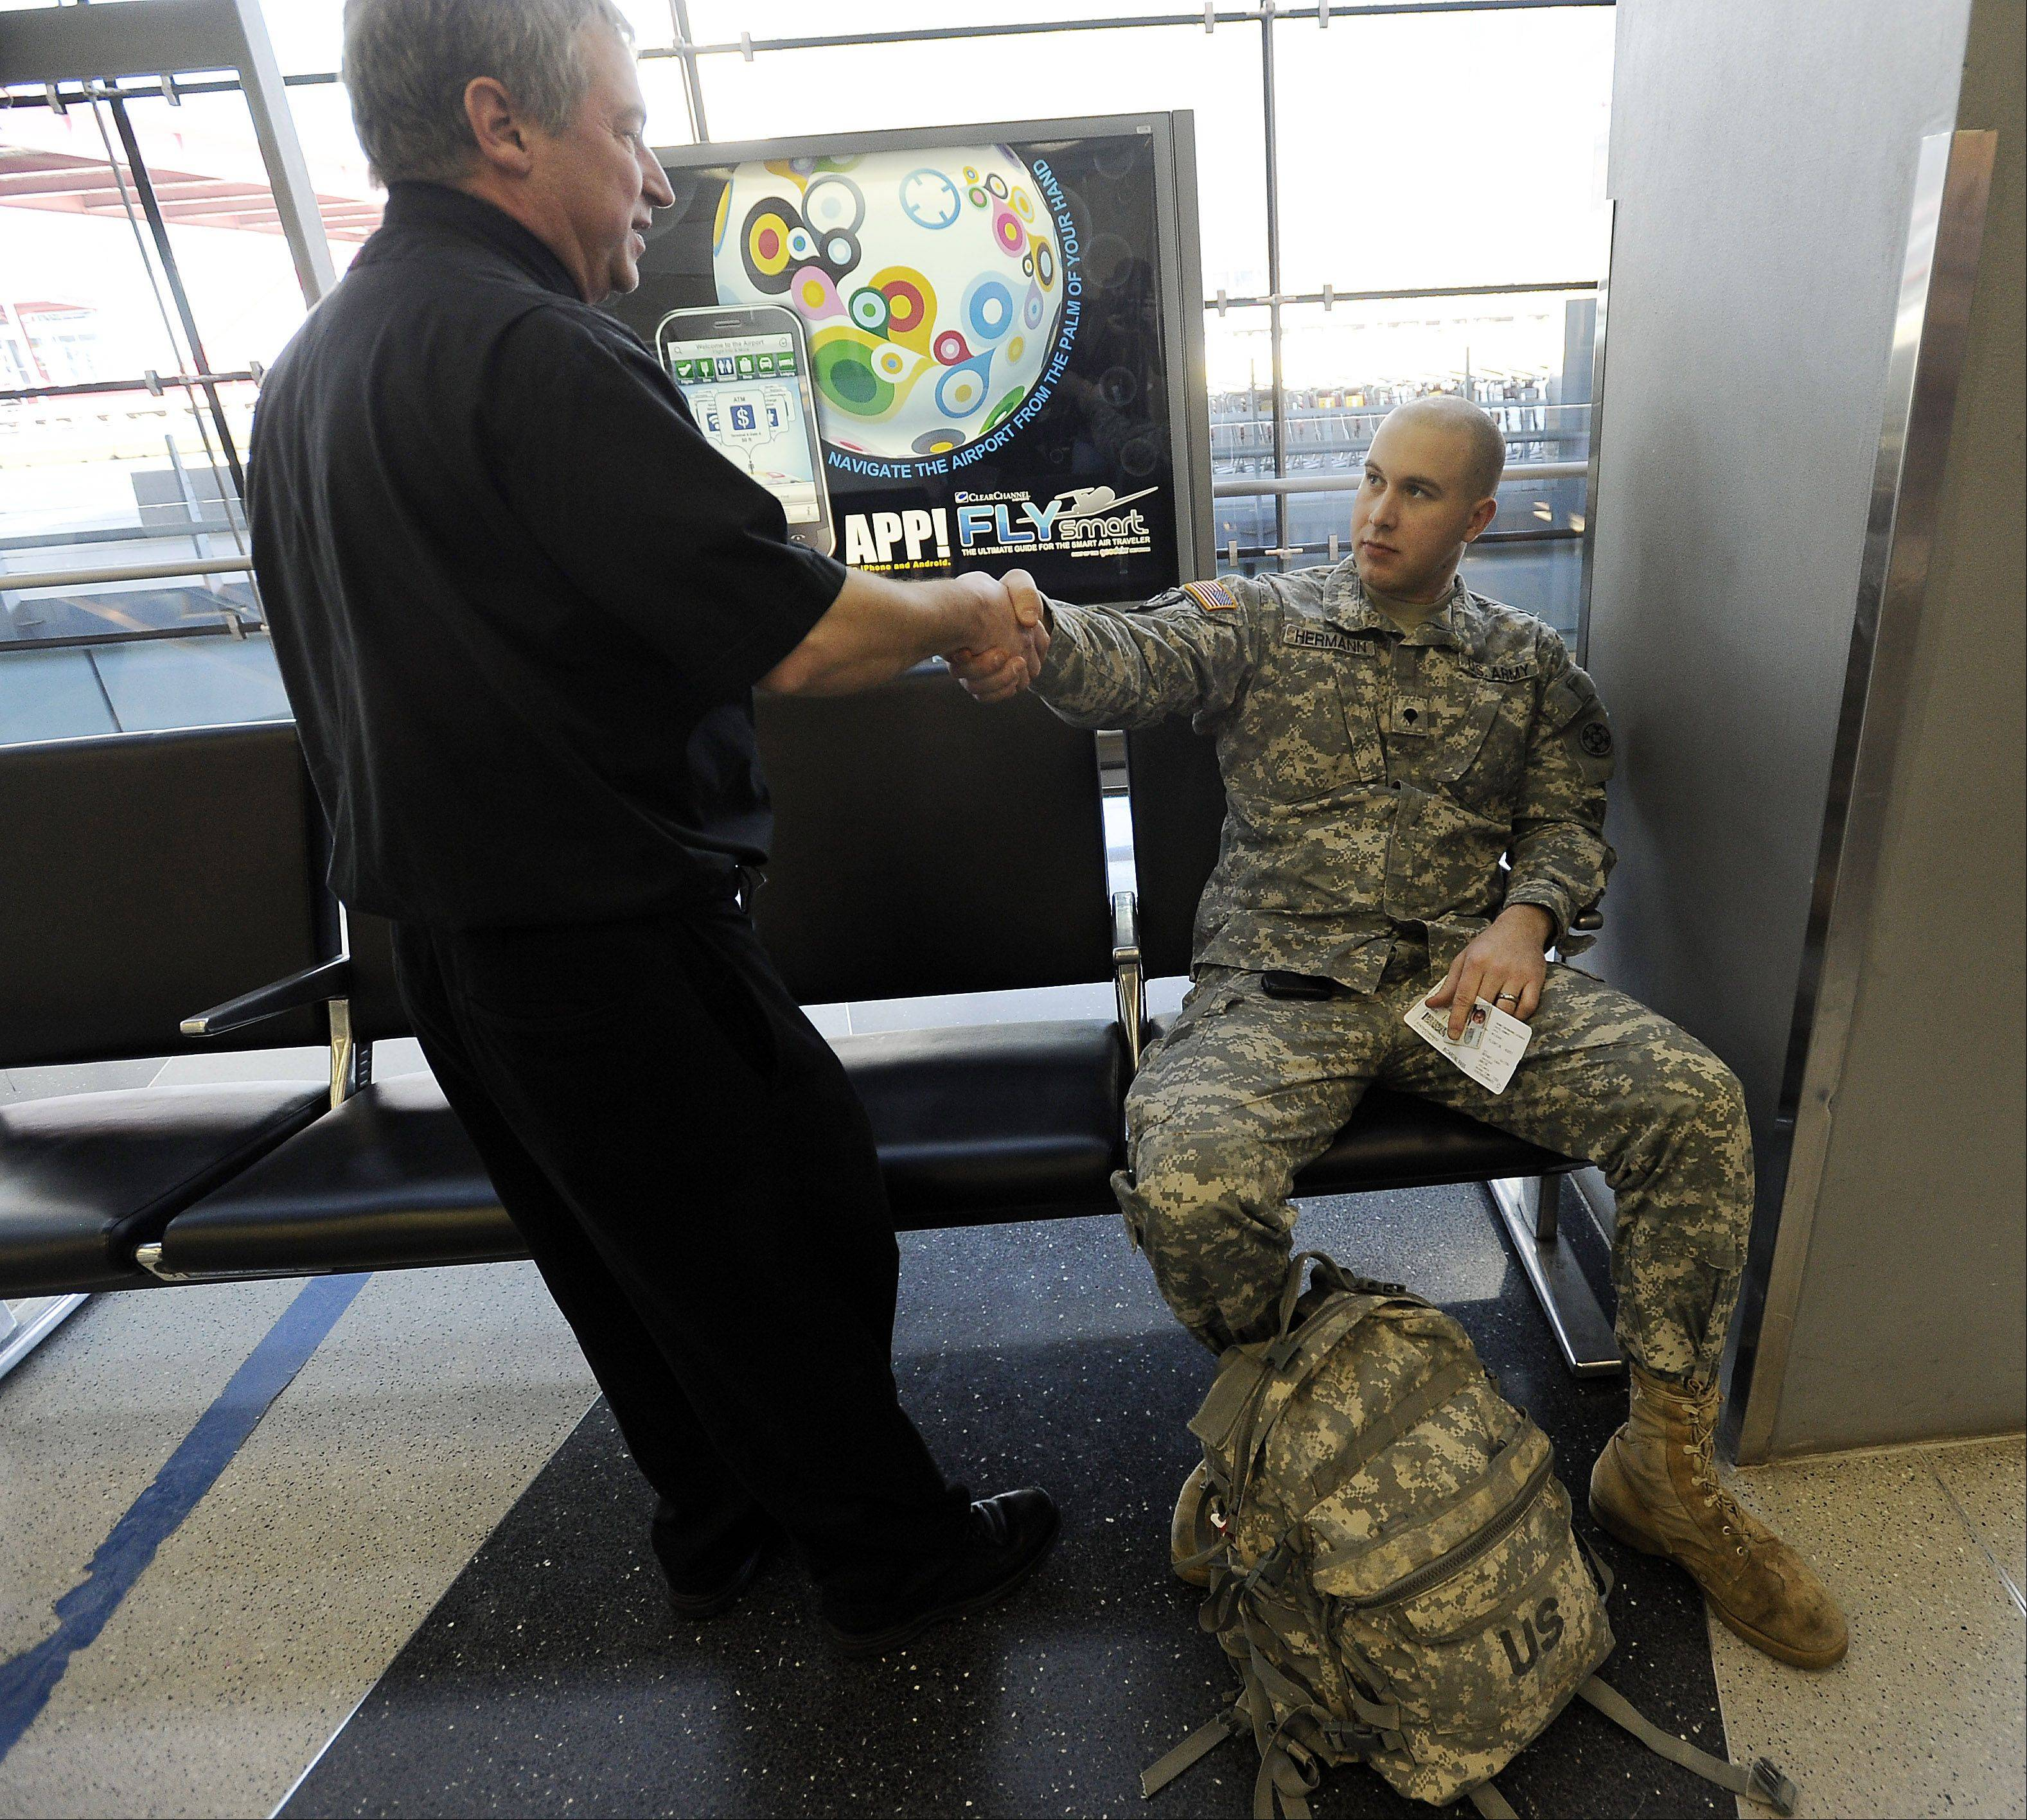 Father Mike, as he is known at O'Hare International Airport, walks Terminal 2 outside the airport's Interfaith Chapel, listening to travelers such as this soldier heading down south for training.